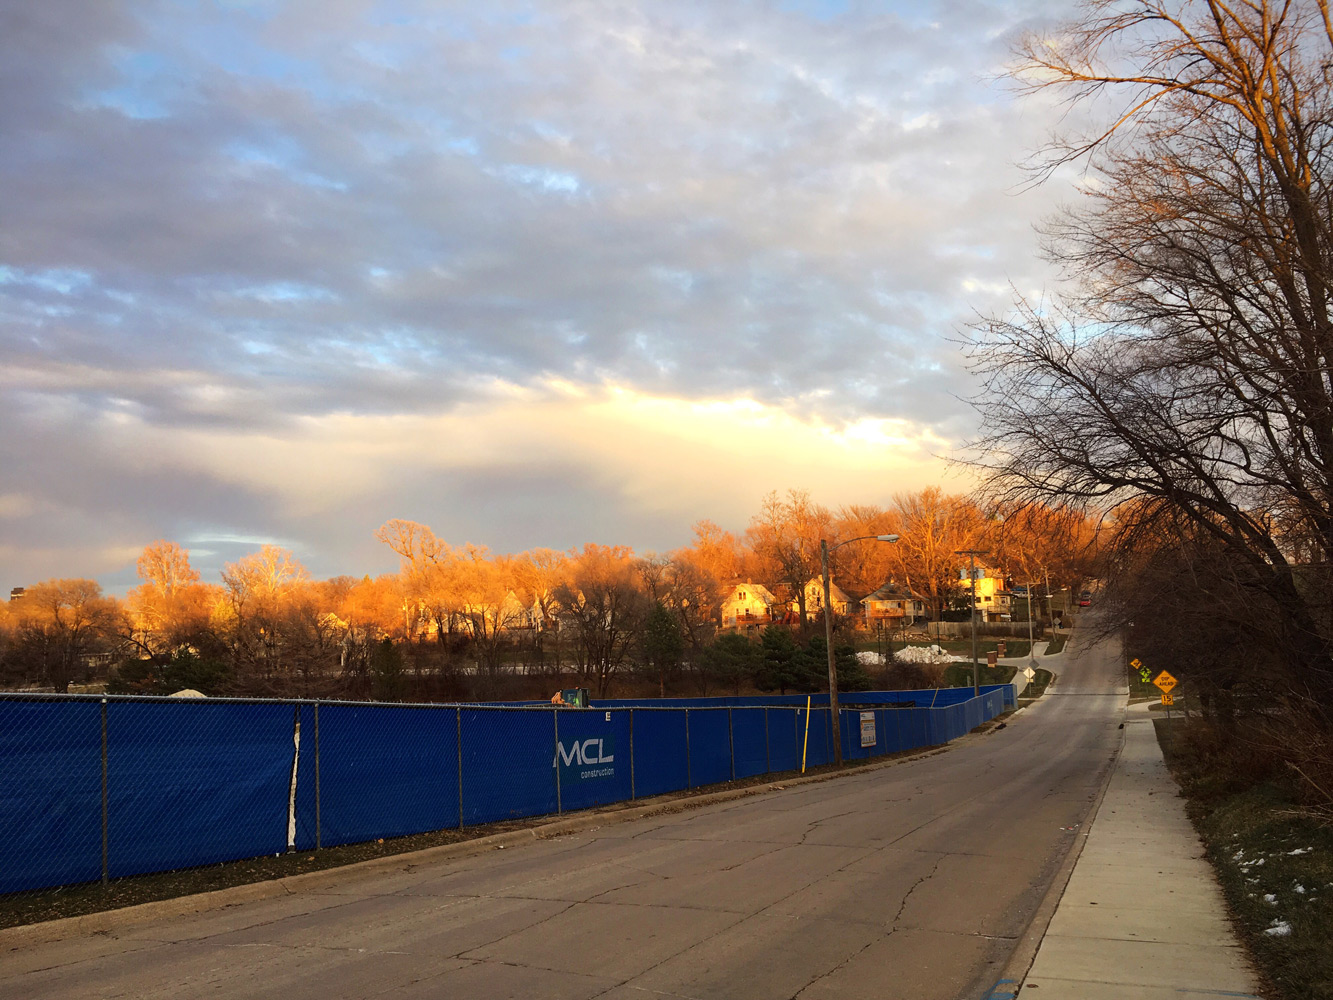 Update on Active Commuting in Omaha! - Lovely Sky During the Walk Home